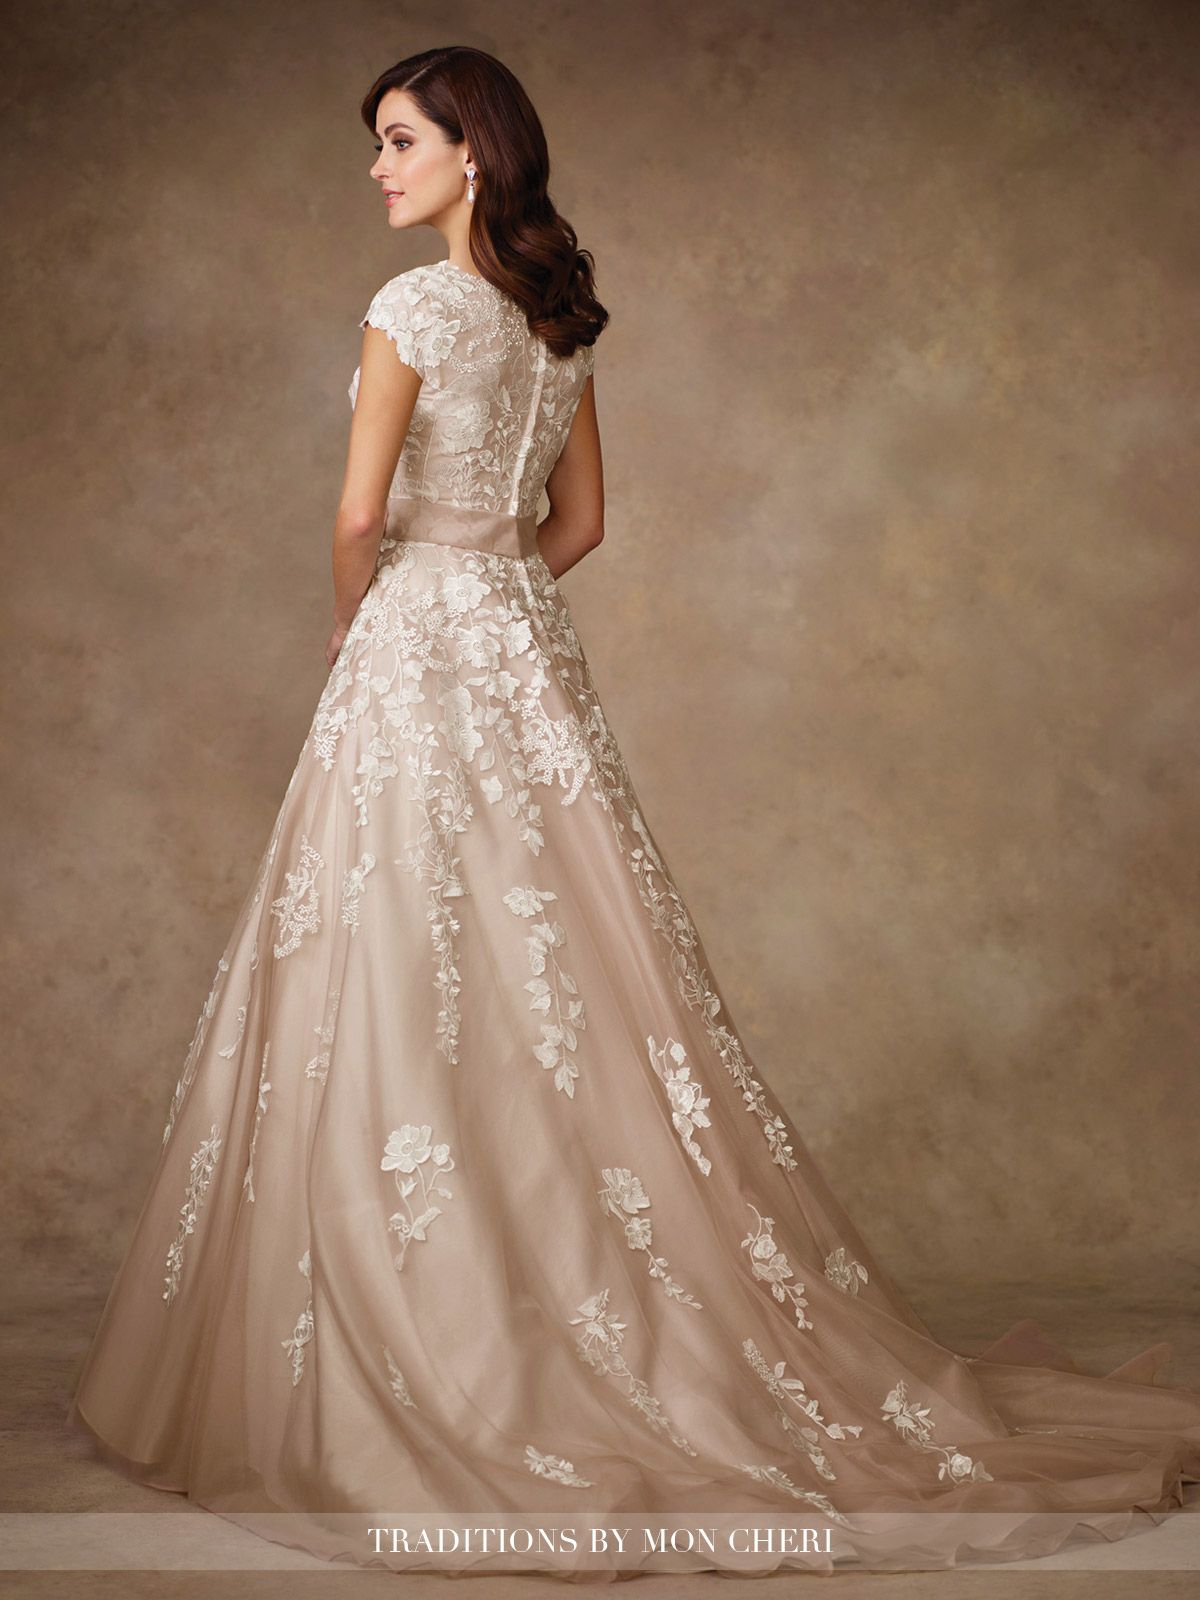 Lace cap sleeve a line wedding dress  Modest Wedding Dresses  TR  Venise lace on organza over satin